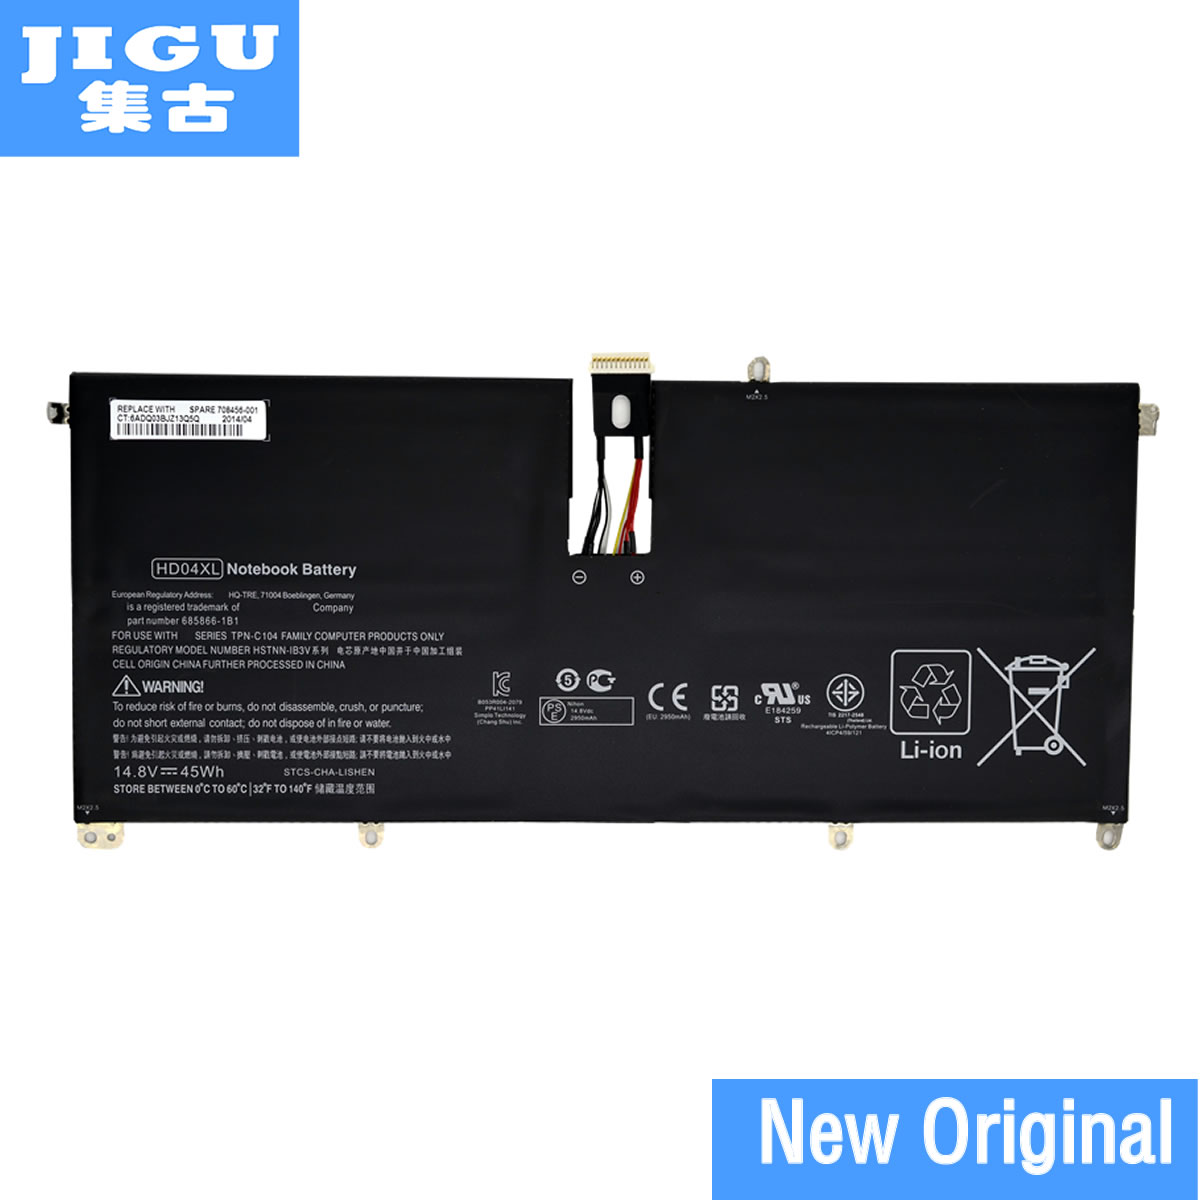 JIGU Genuine Original HD04XL Battery For Hp Envy Spectre Xt 13-2021tu Xt 13-2000eg Xt 13-2120tu 685866-1B1 685866-171 14.8V 45Wh